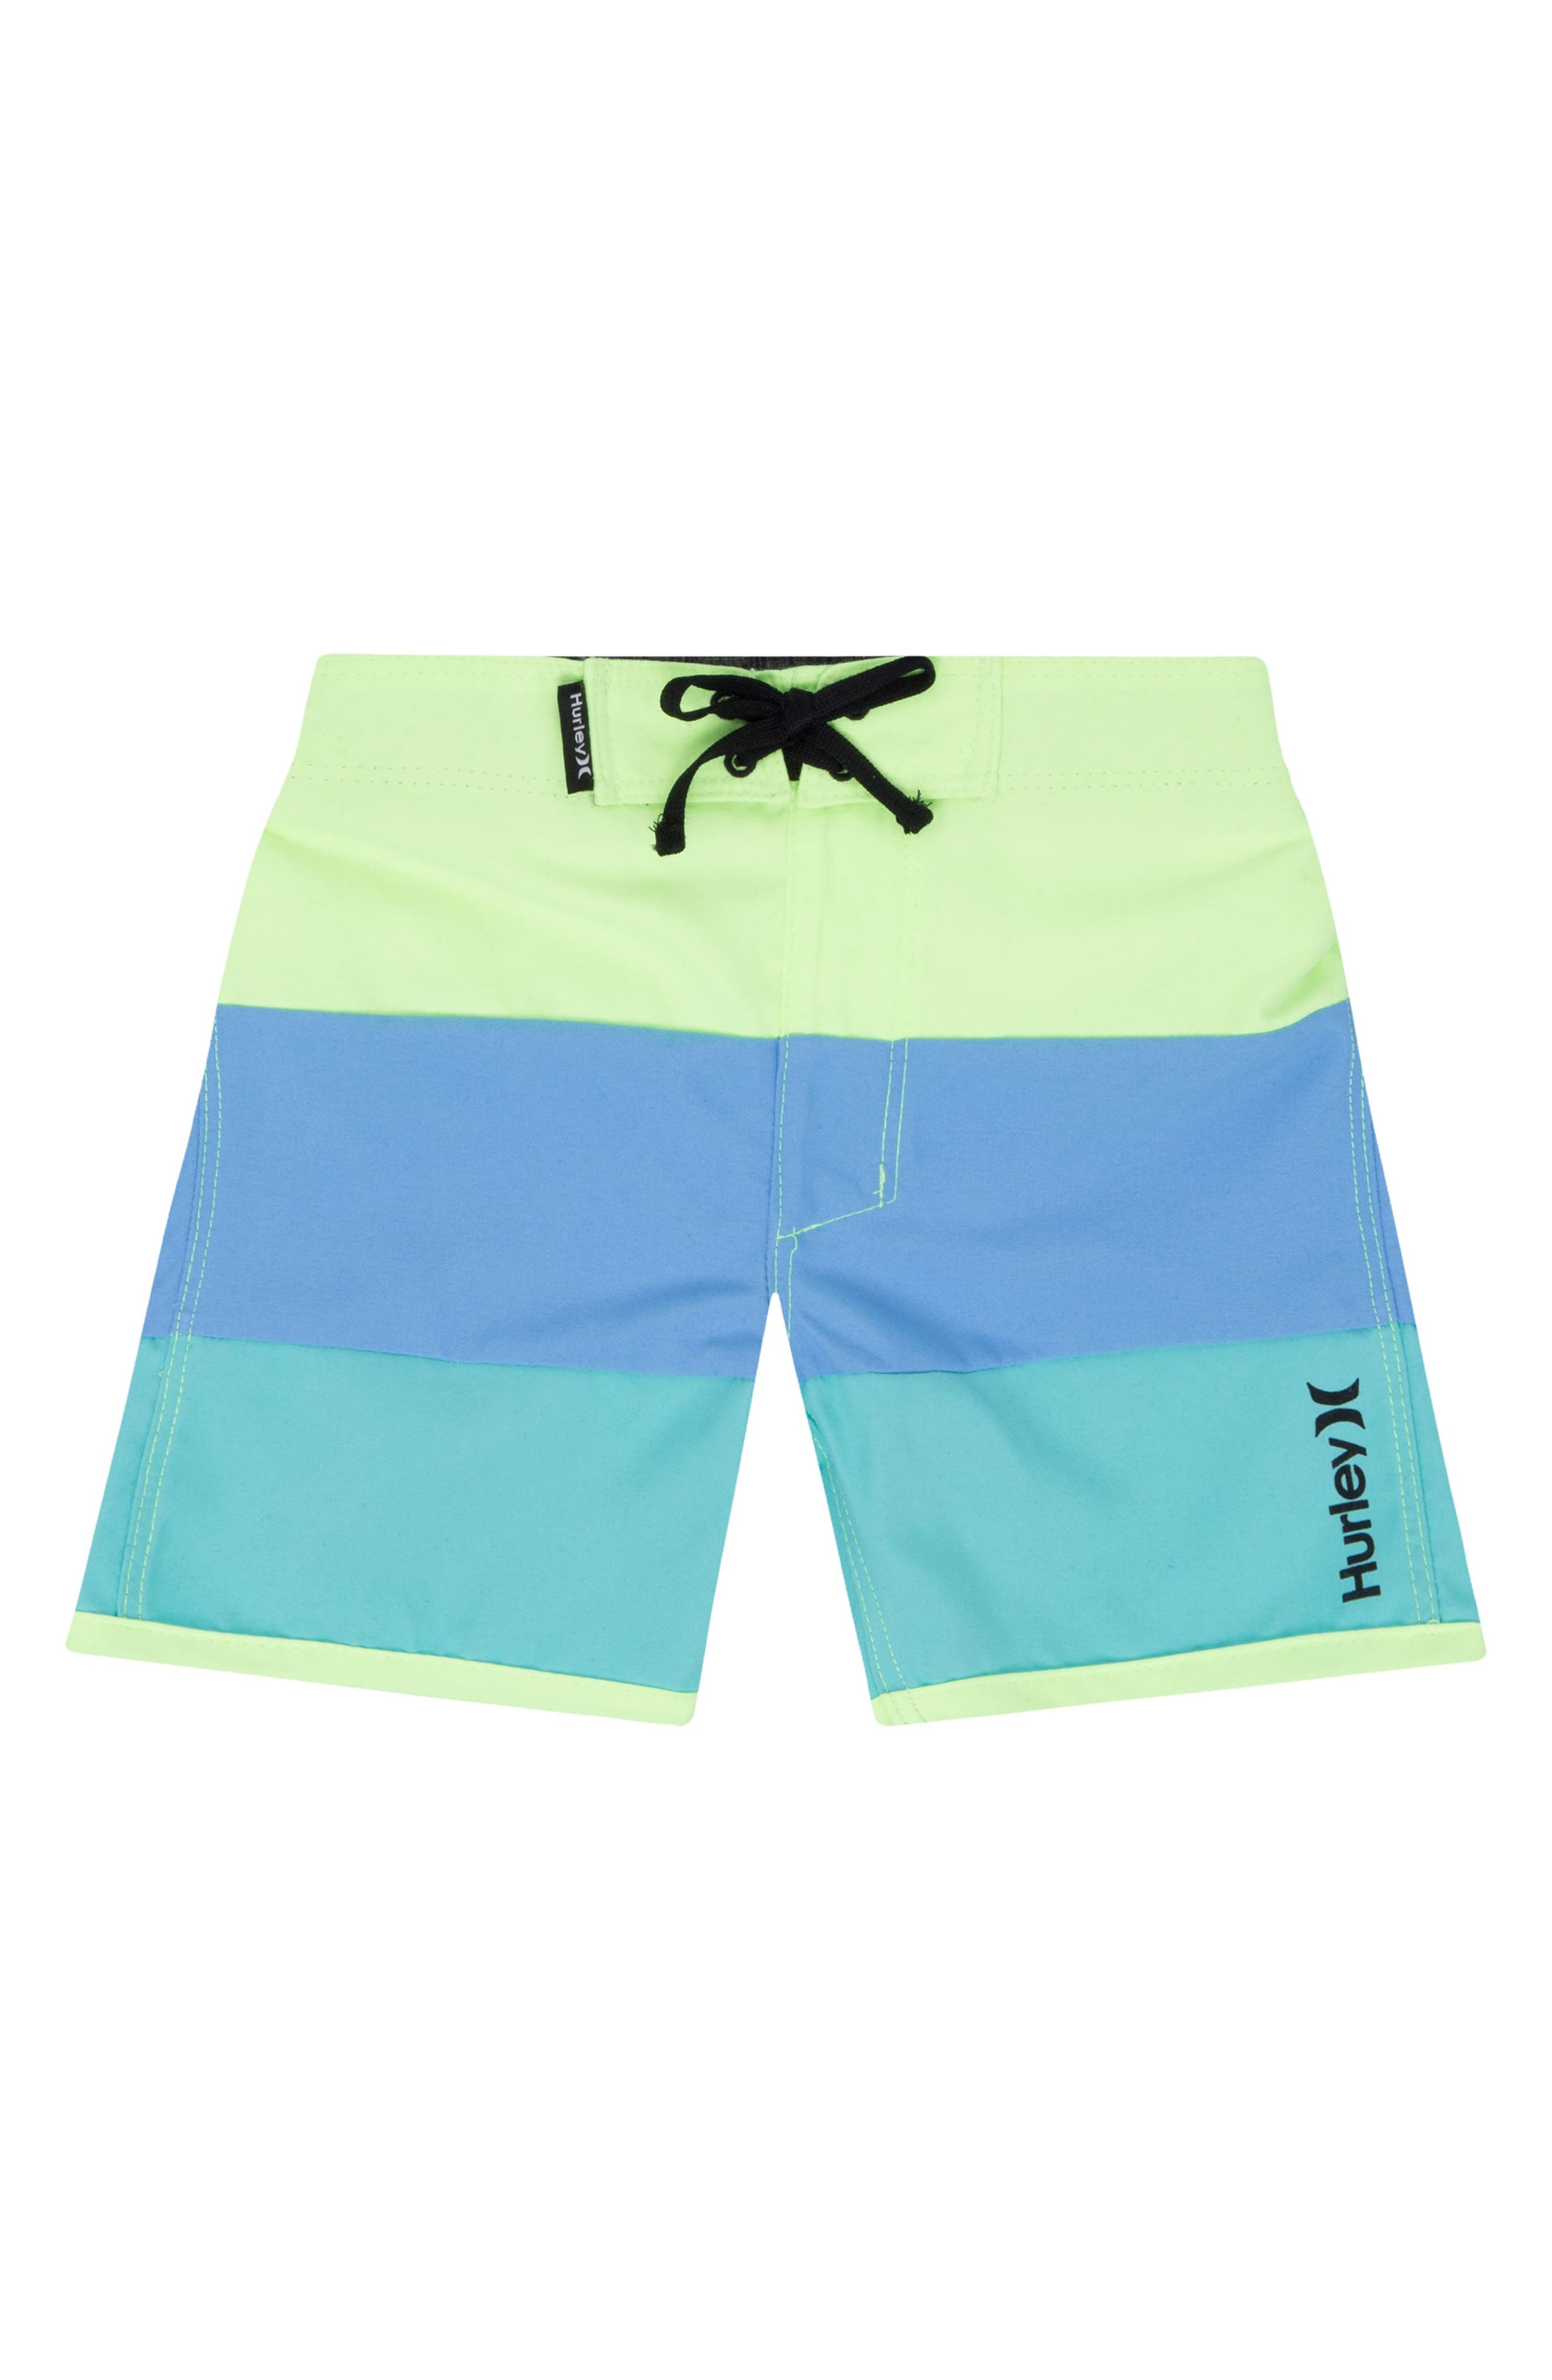 Triple Threat Board Shorts,                         Main,                         color, Ghost Green